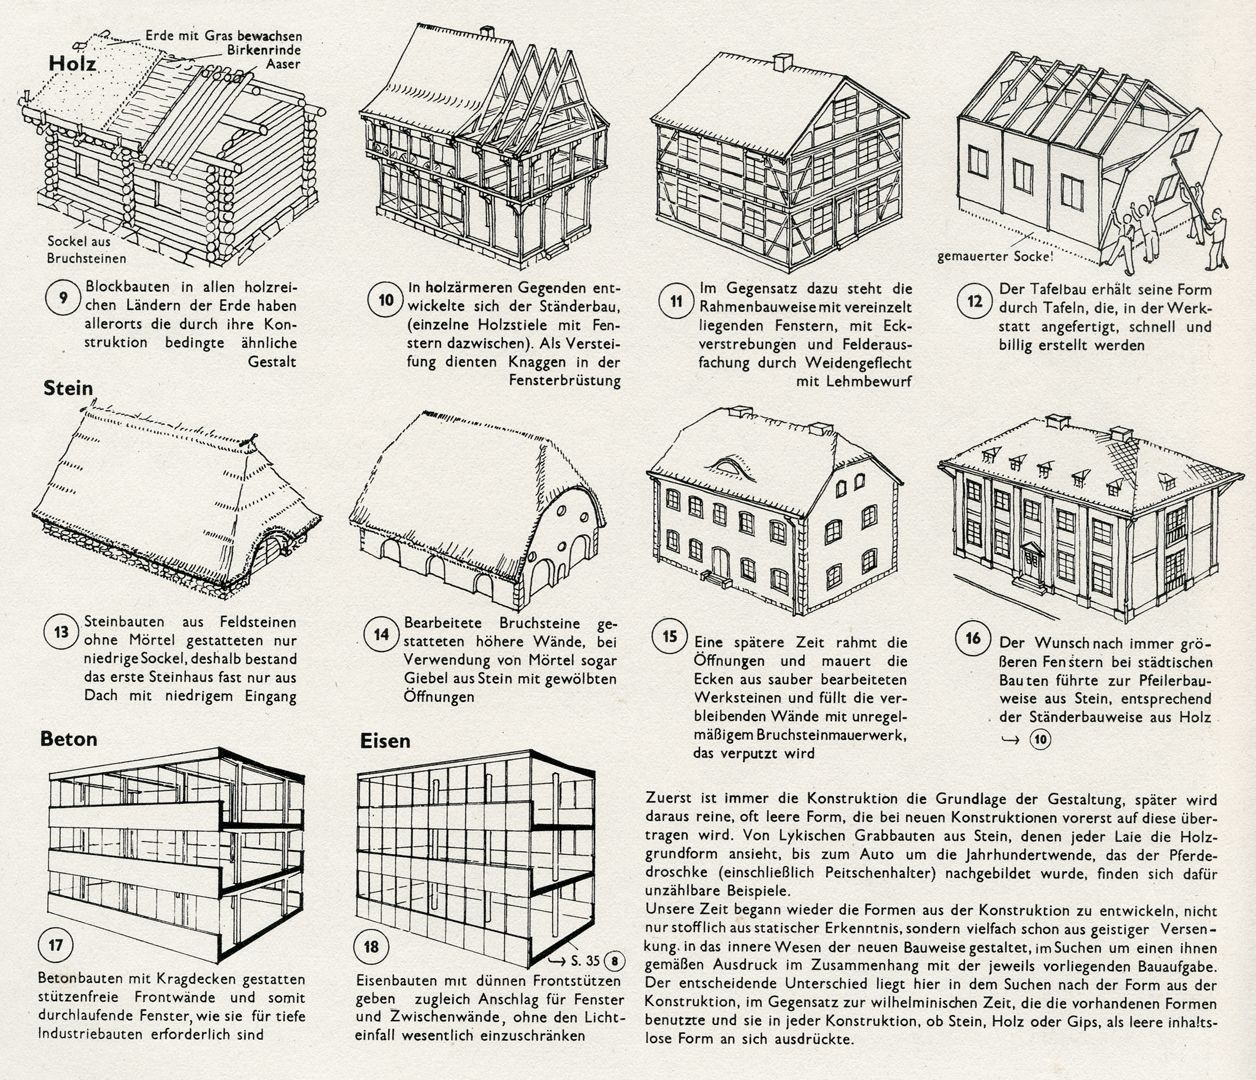 BUILDING FORMS AS A RESULT OF CONSTRUCTION Wood, stone, concrete and iron